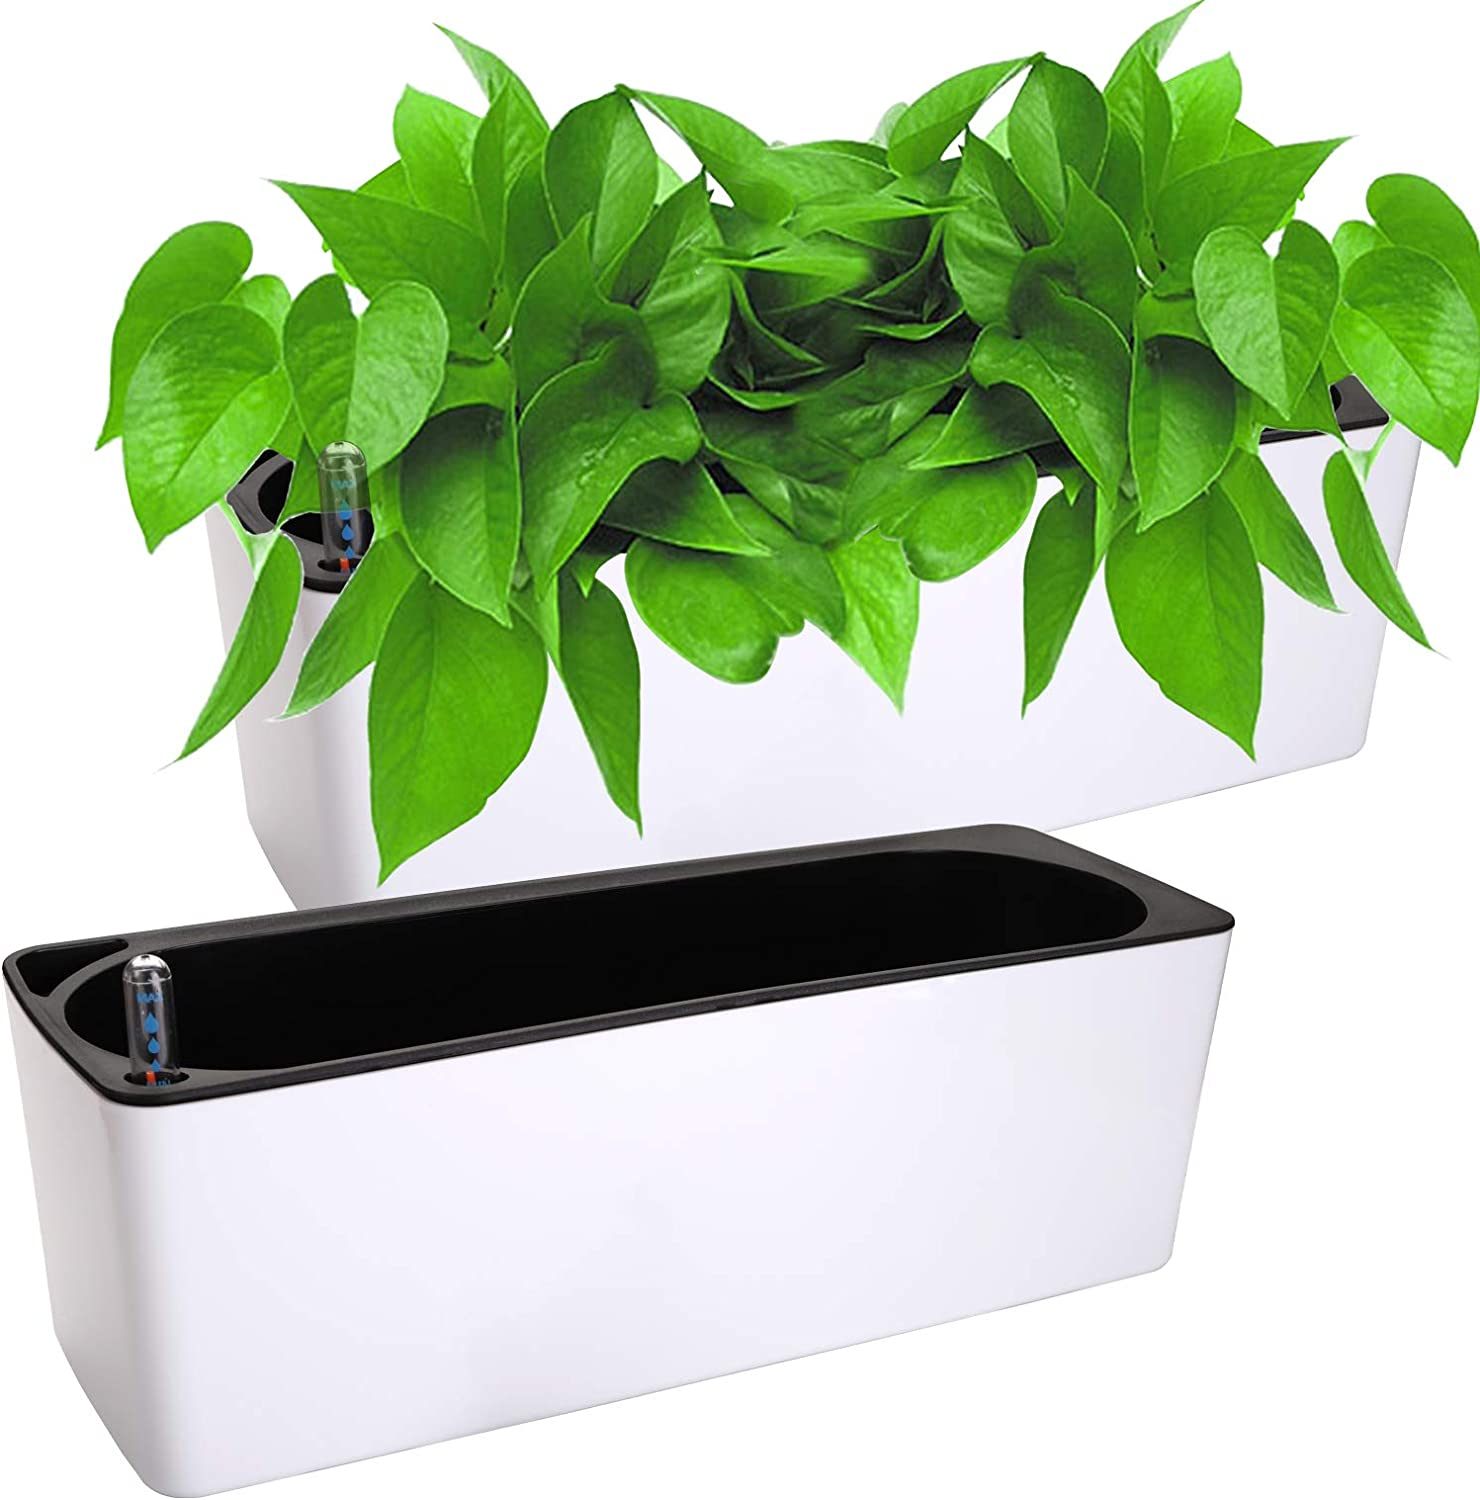 Fasmov 2 Pack Rectangle Self Watering Planter with Water Level Indicator, Window Gardening Box, Decorative Planter Pot for All House Plants Flowers Herbs, Modern Decorative Planter Pot, 16x 5.5 Inch